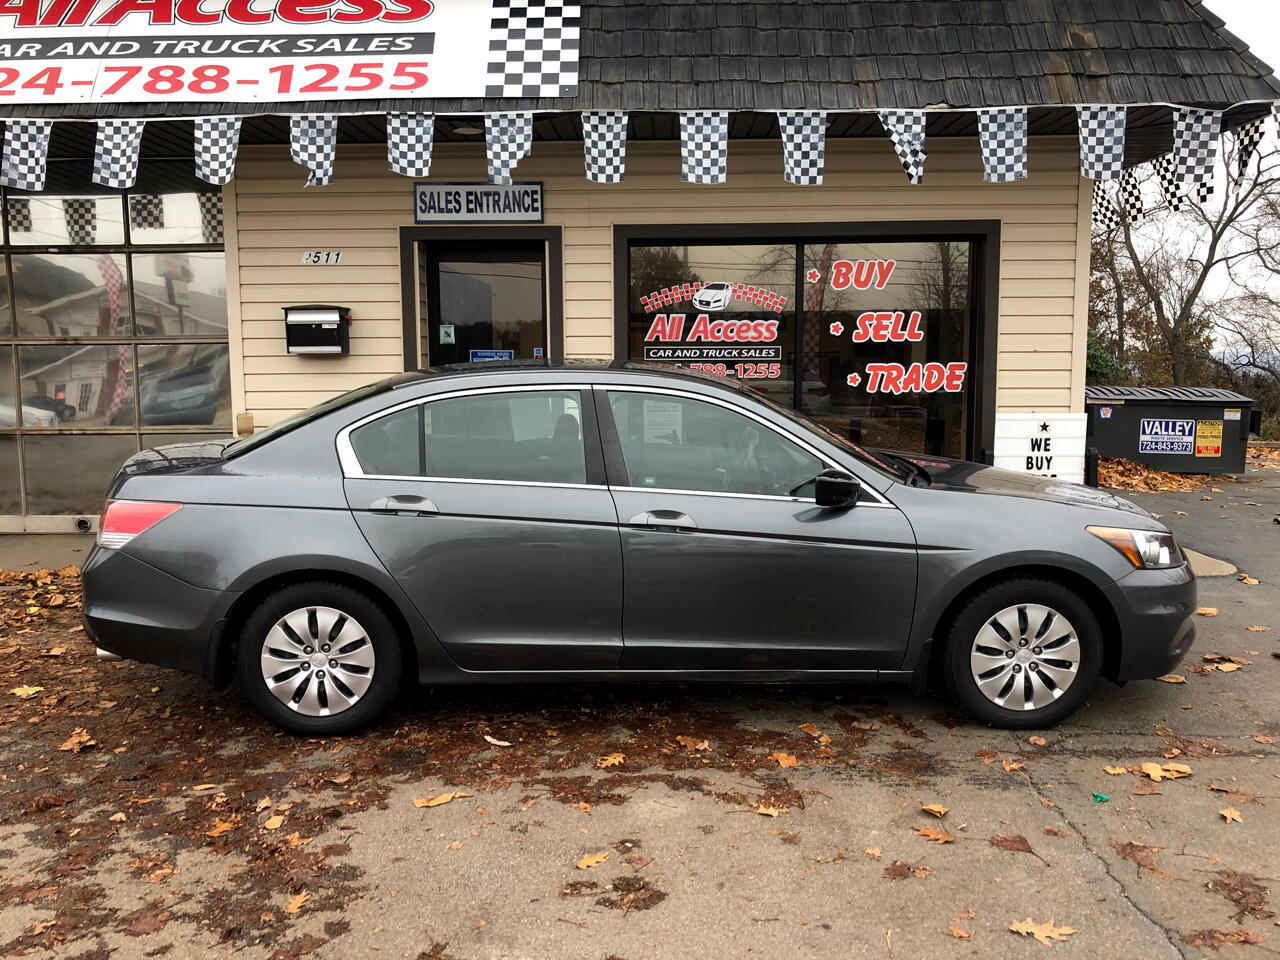 2012 Honda Accord Sdn 4dr I4 Man LX